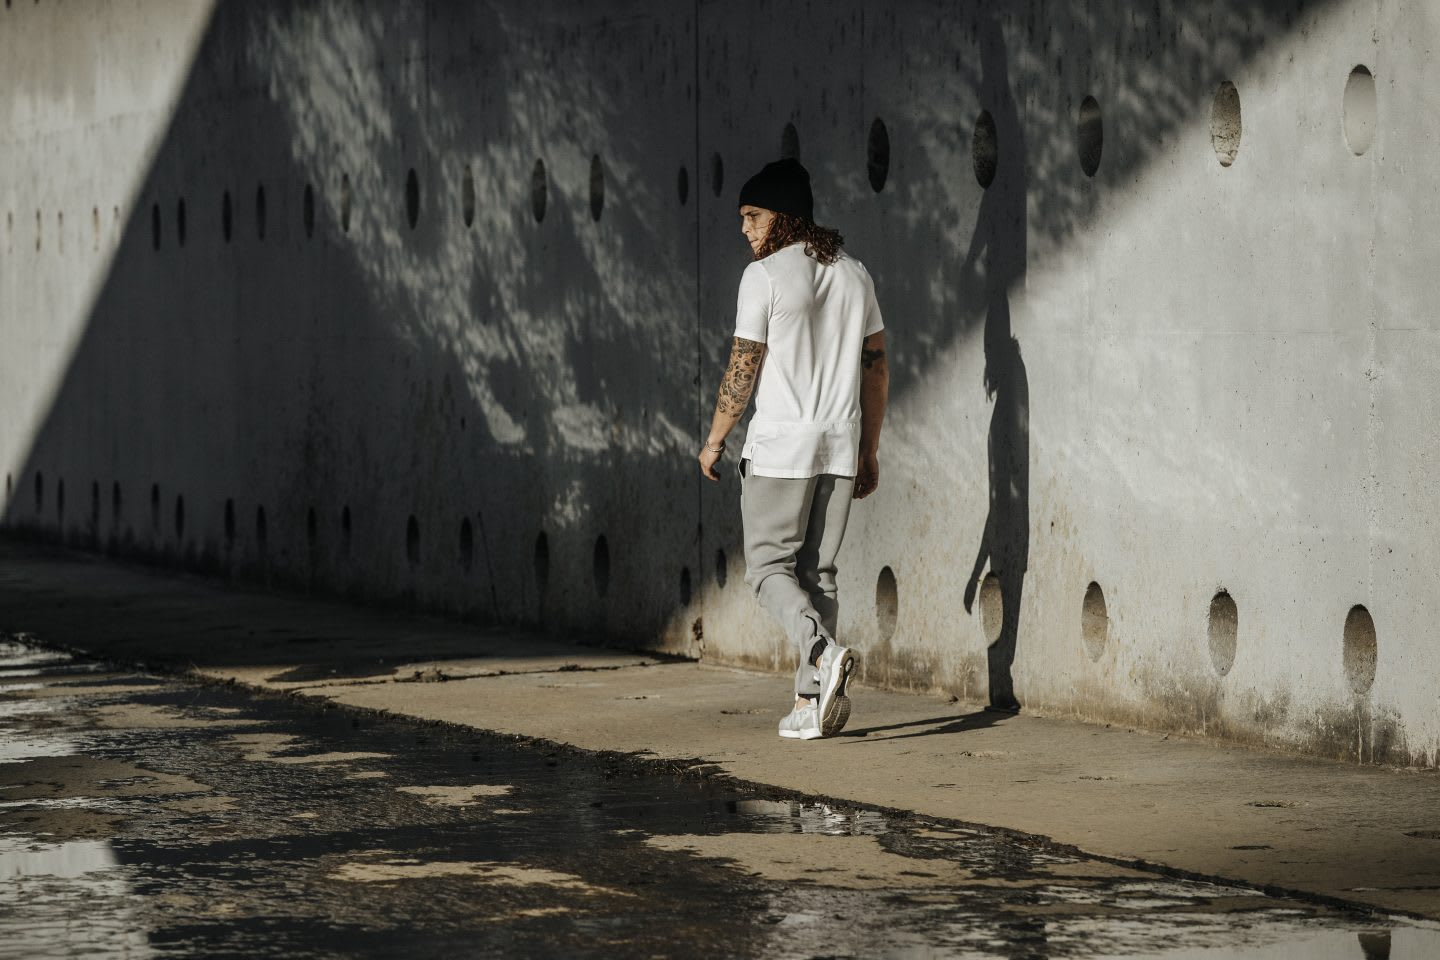 Guy walking on concrete in casual clothes after workout, urban environment, urban athlete, style, fashion, Reebok, GamePlan A